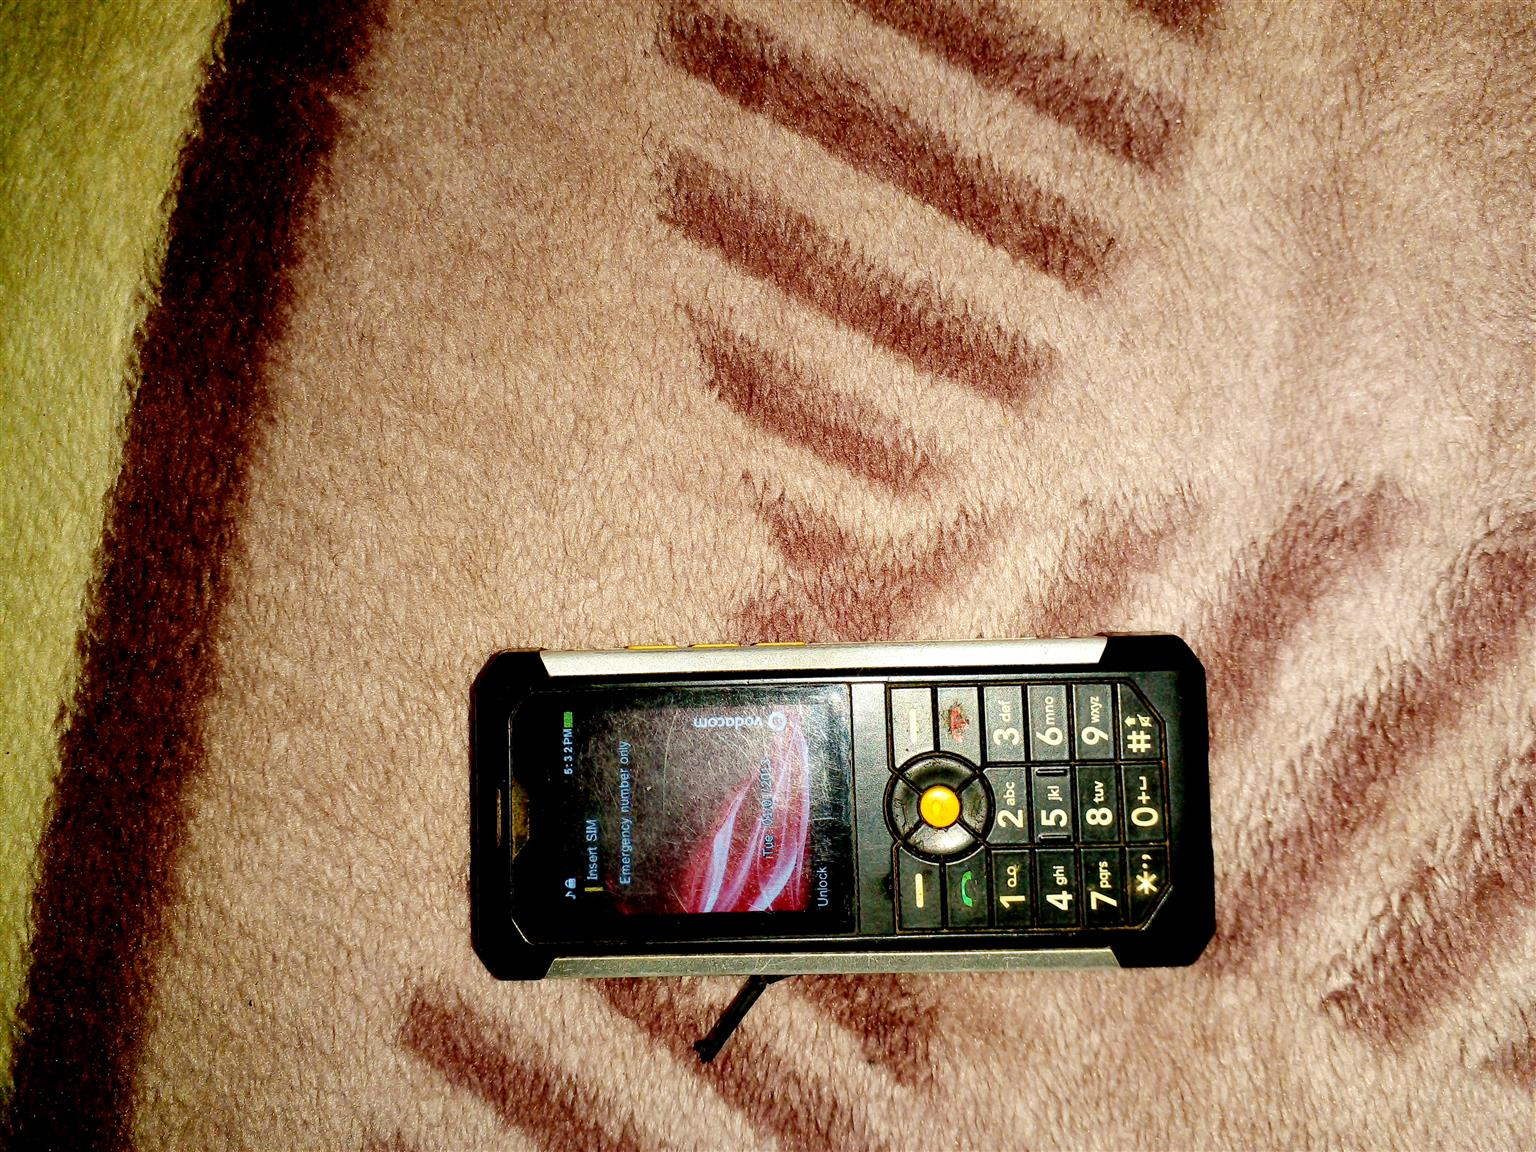 Cat b100 cellphone in working condition good batyery life for sale